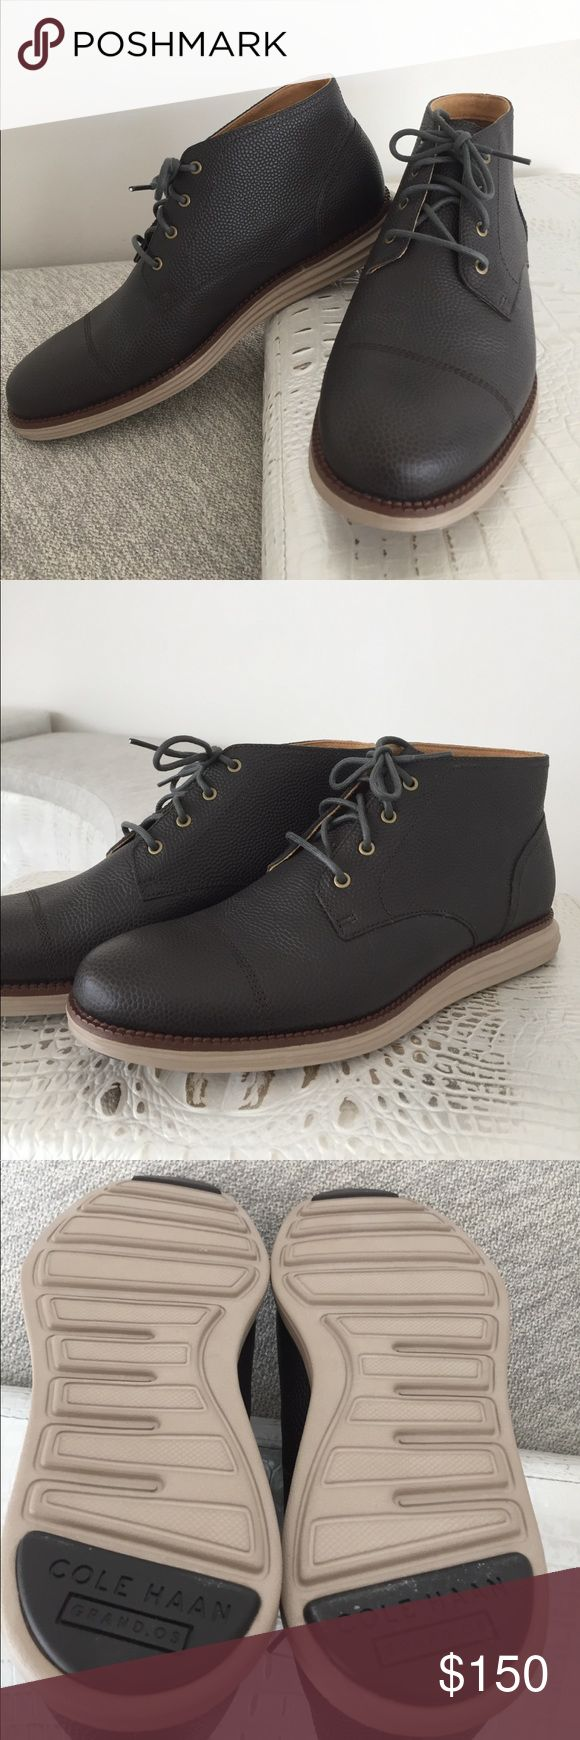 Cole Haan Men's Leather Chukka Boot Brand new, never worn!! Gorgeous pebbled leather Chukka boot in dark espresso! Lined inside with suede and canvas.  Rubber sole.Size 8 1/2M. No box Cole Haan Shoes Chukka Boots